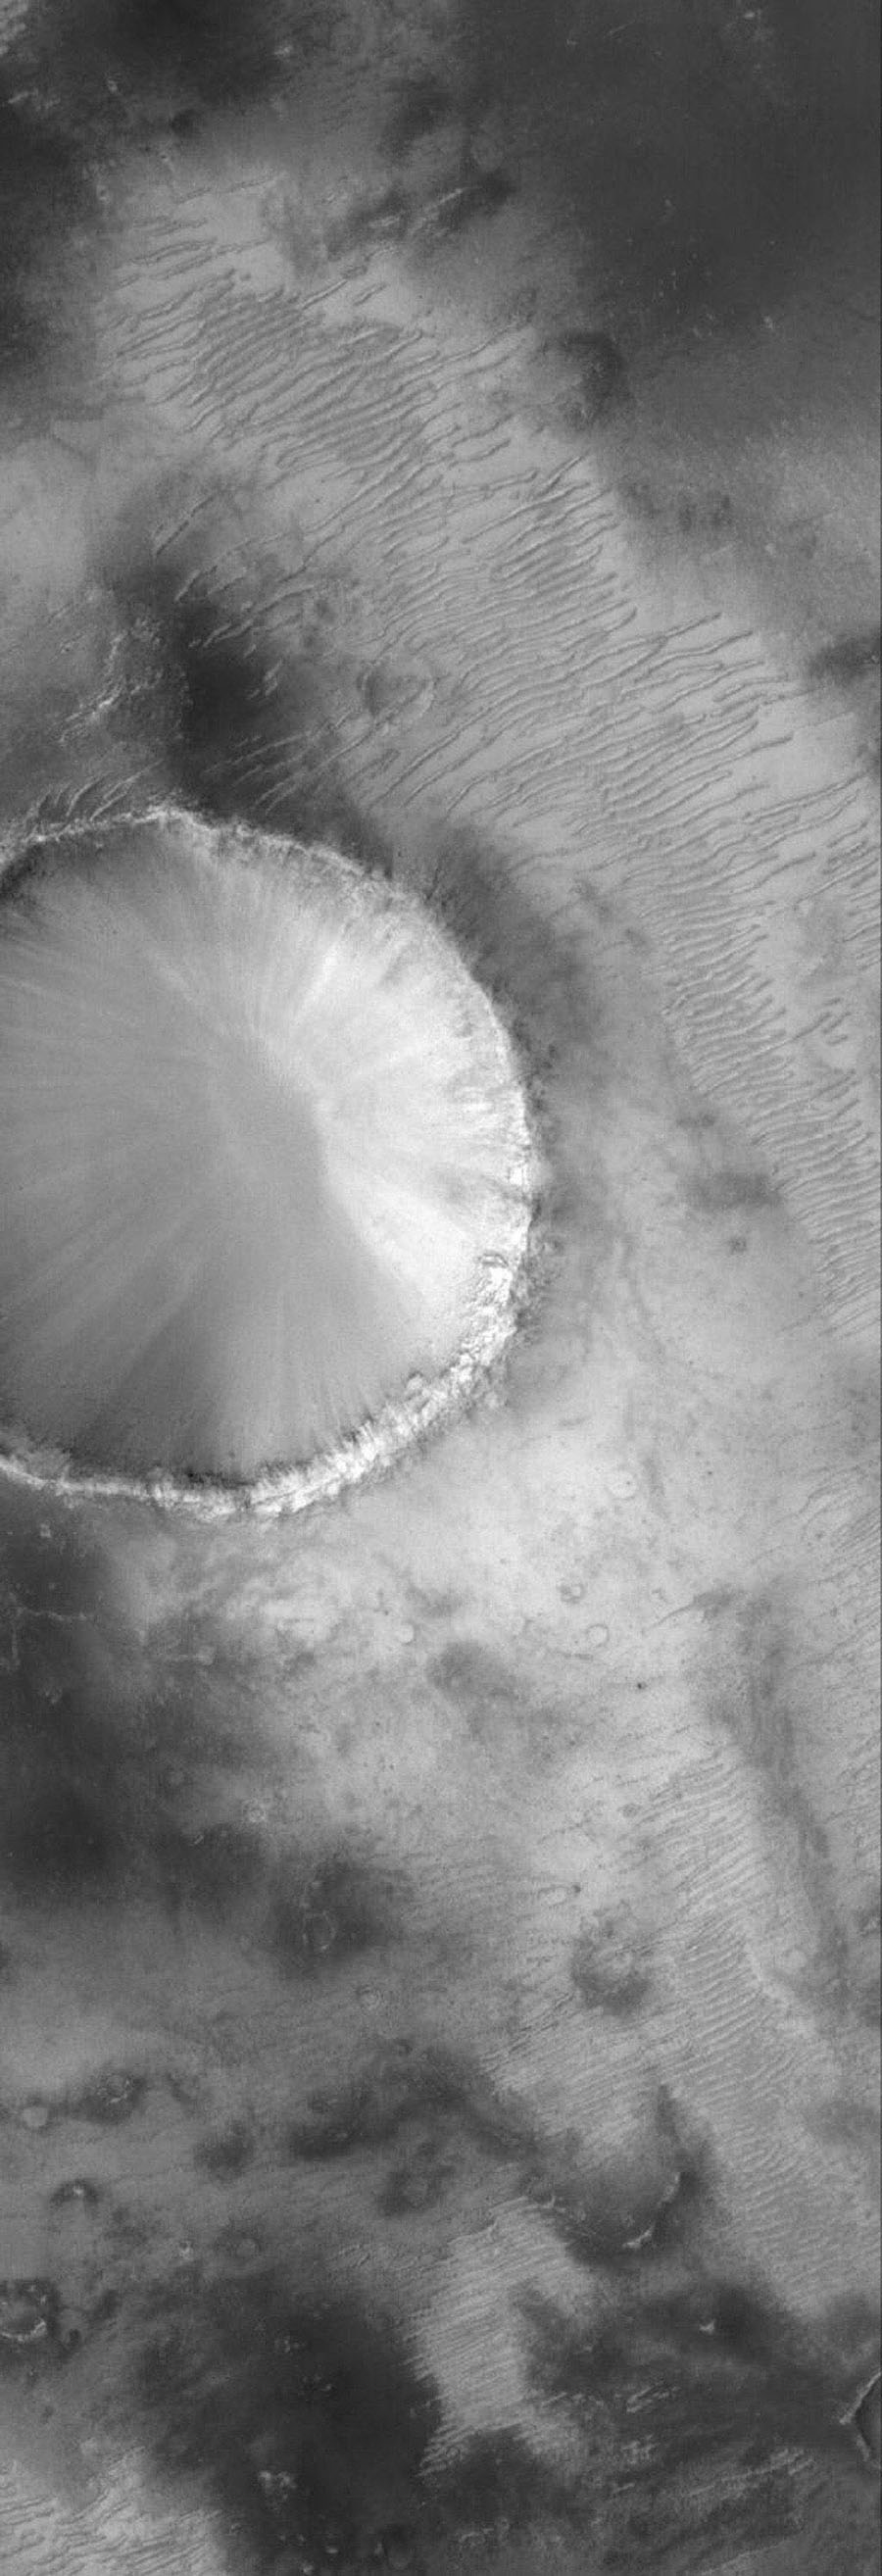 NASA's Mars Global Surveyor shows a portion of an old impact crater in the Sinus Sabaeus region of Mars, just south of the large impact basin, Schiaparelli.